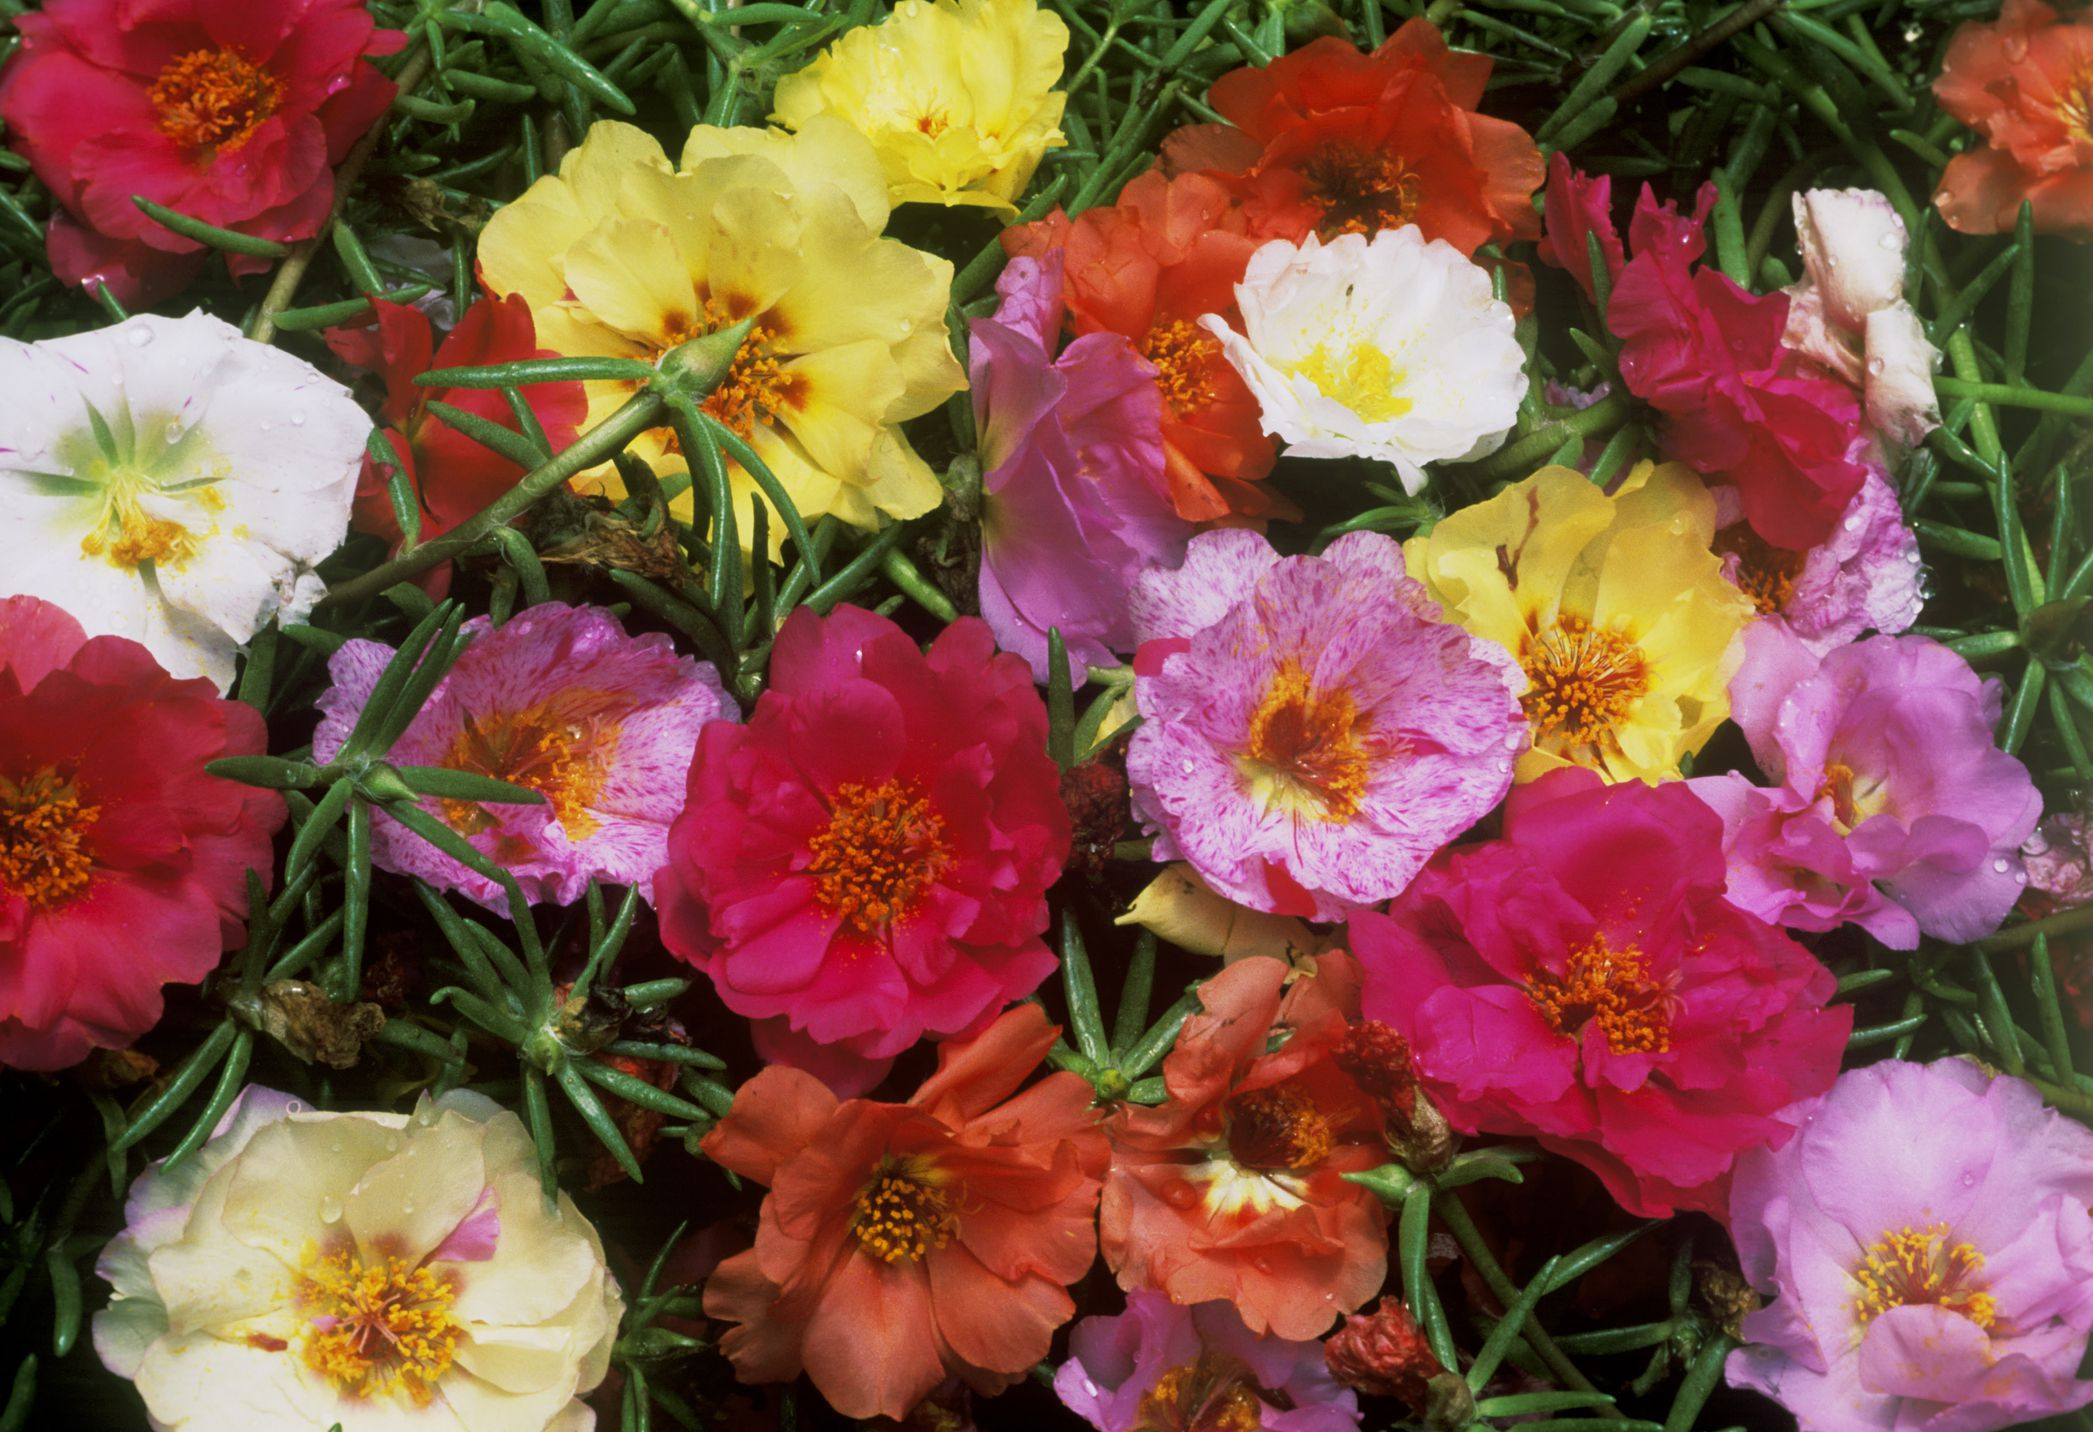 How To Grow And Care For Portulaca Moss Rose Flowers